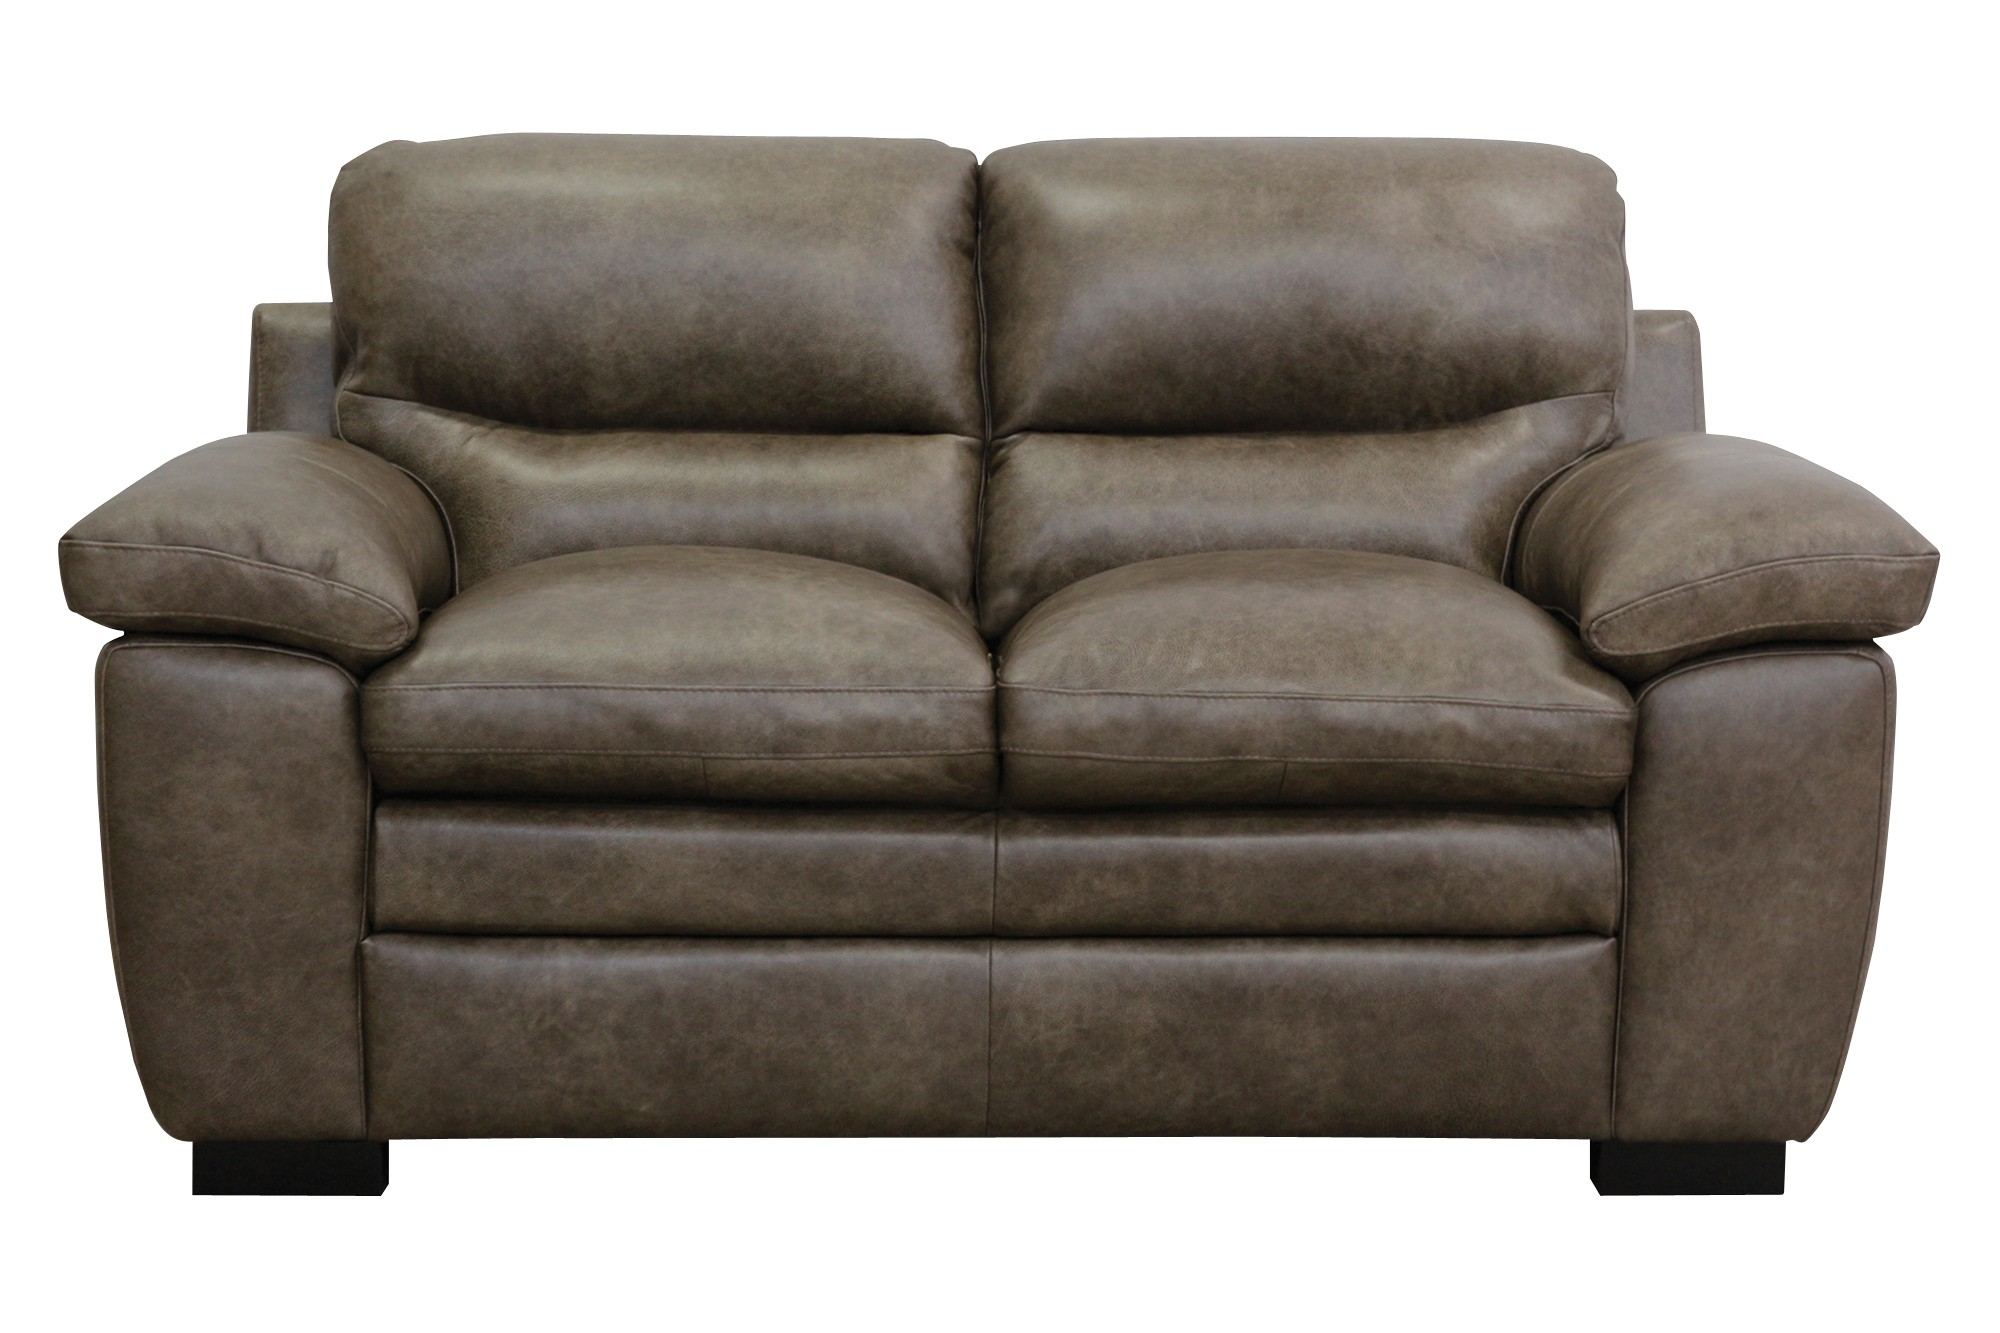 Tatum Italian Leather Loveseat From Luke Leather Coleman Furniture